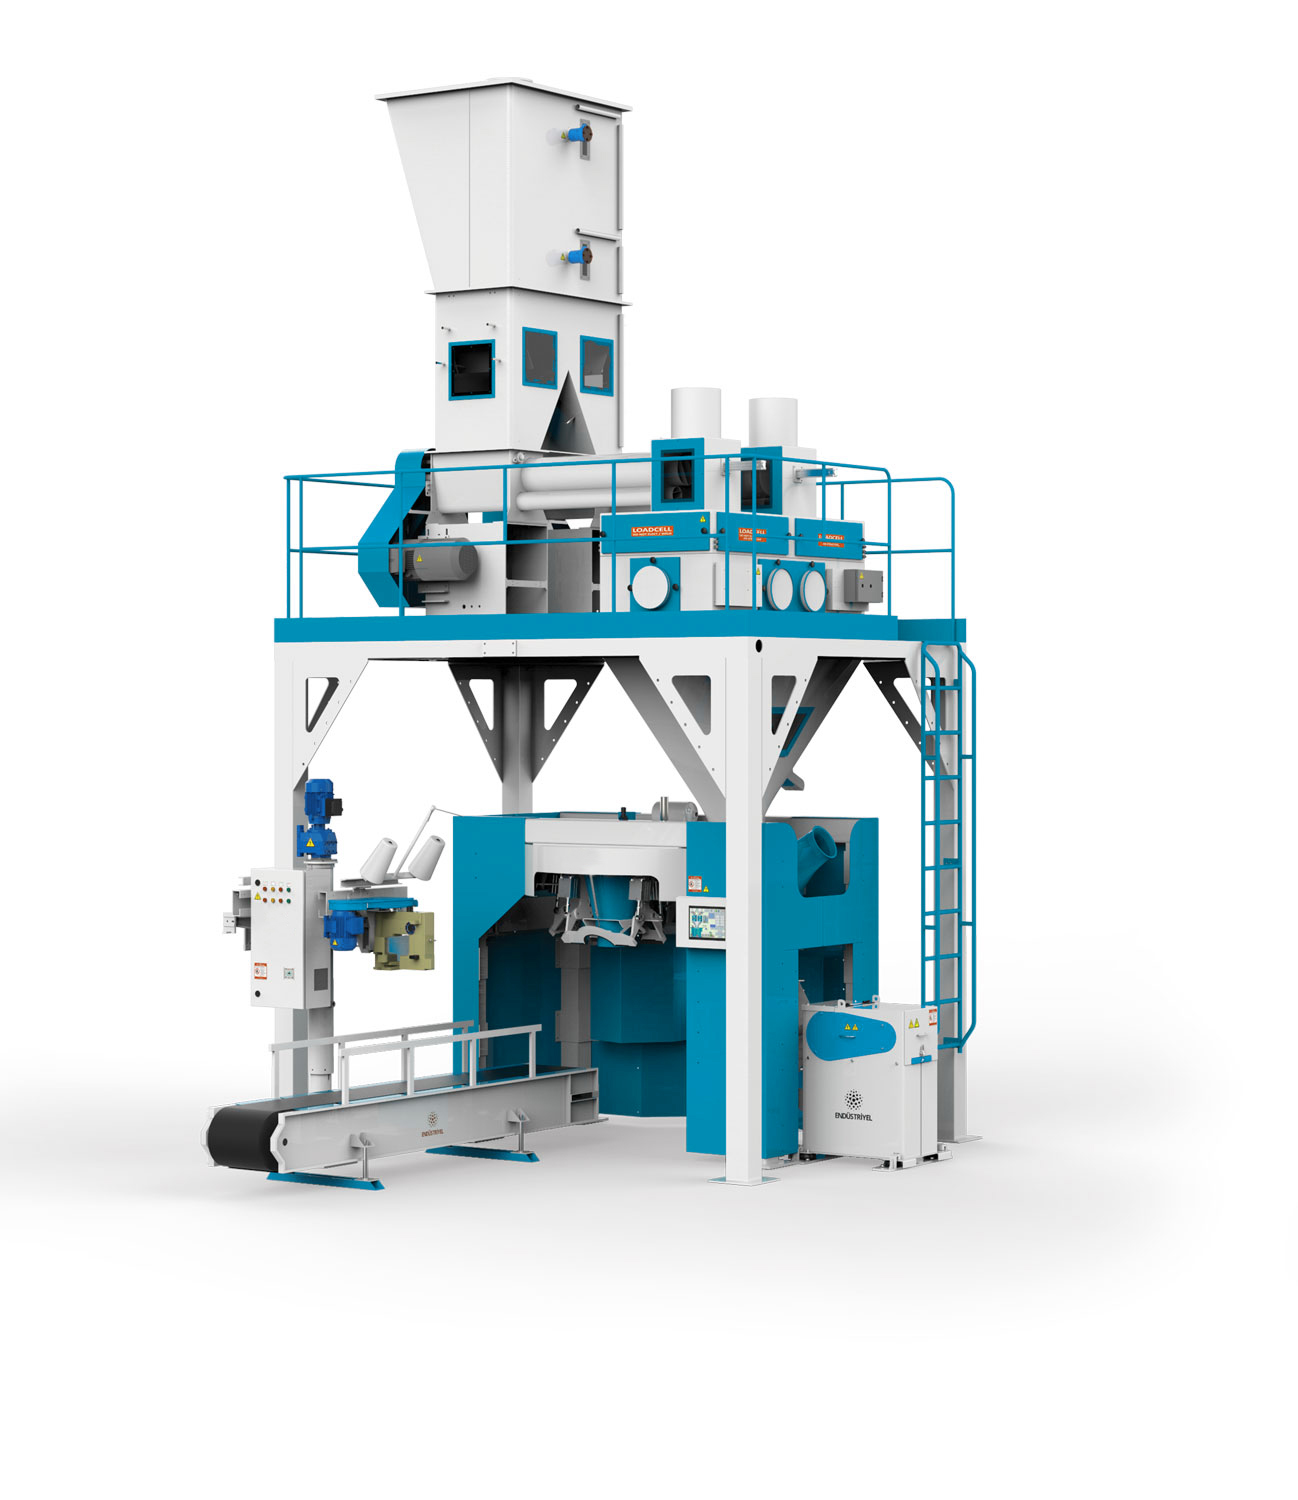 Flour Bagging Machine System With Single Weigh Hopper & Single Station 5/10 Kg4